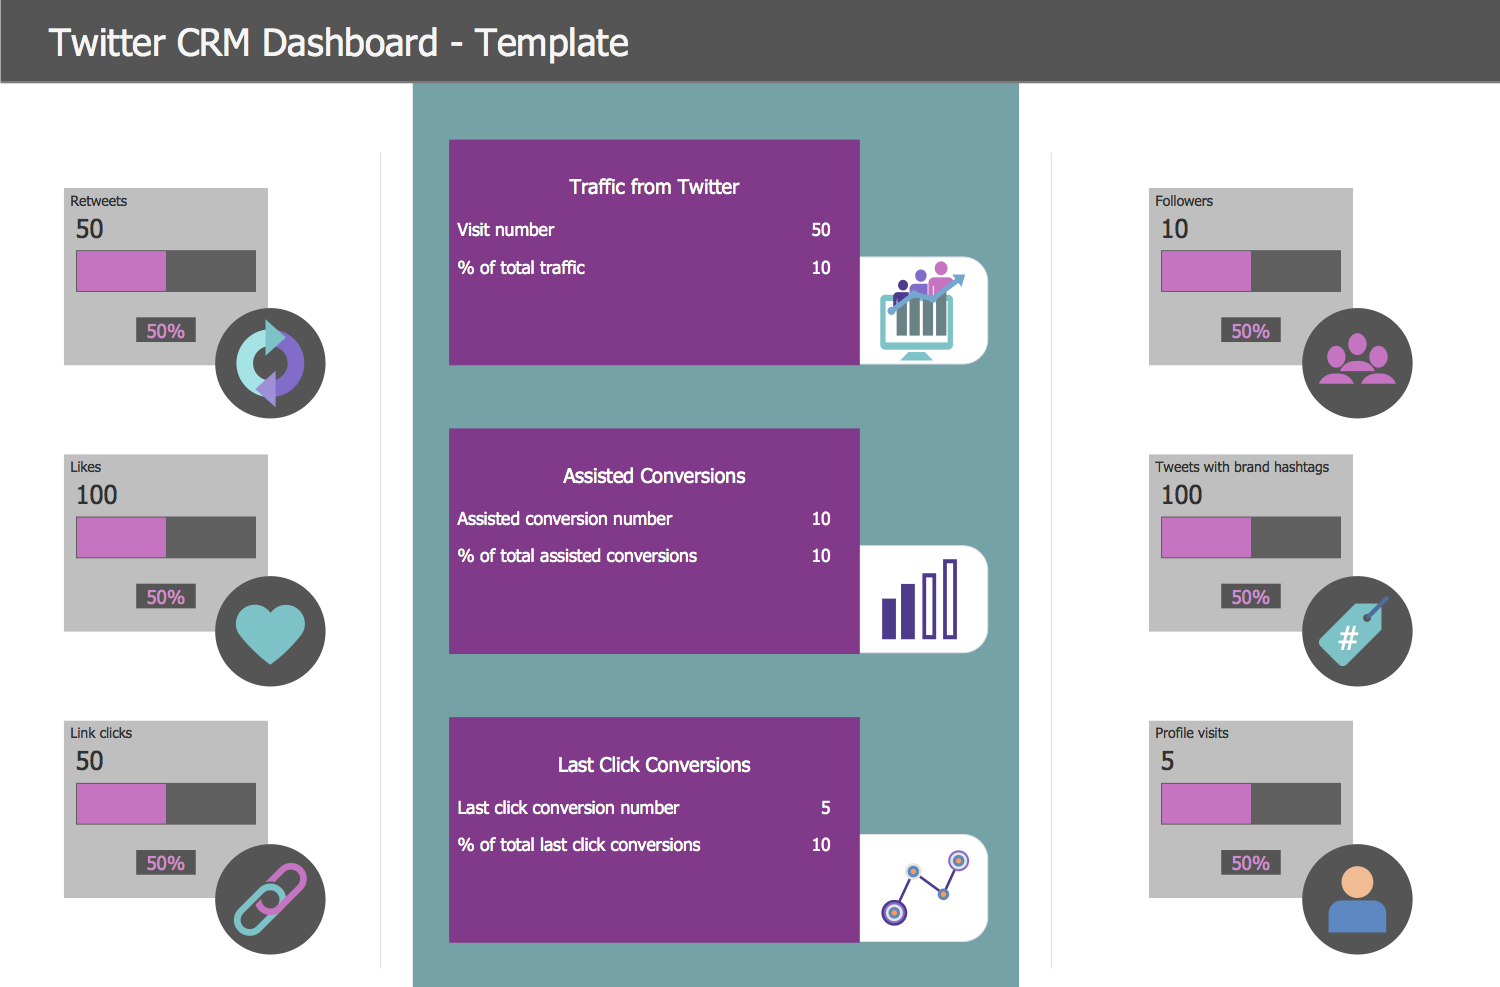 Twitter CRM Dashboard Template